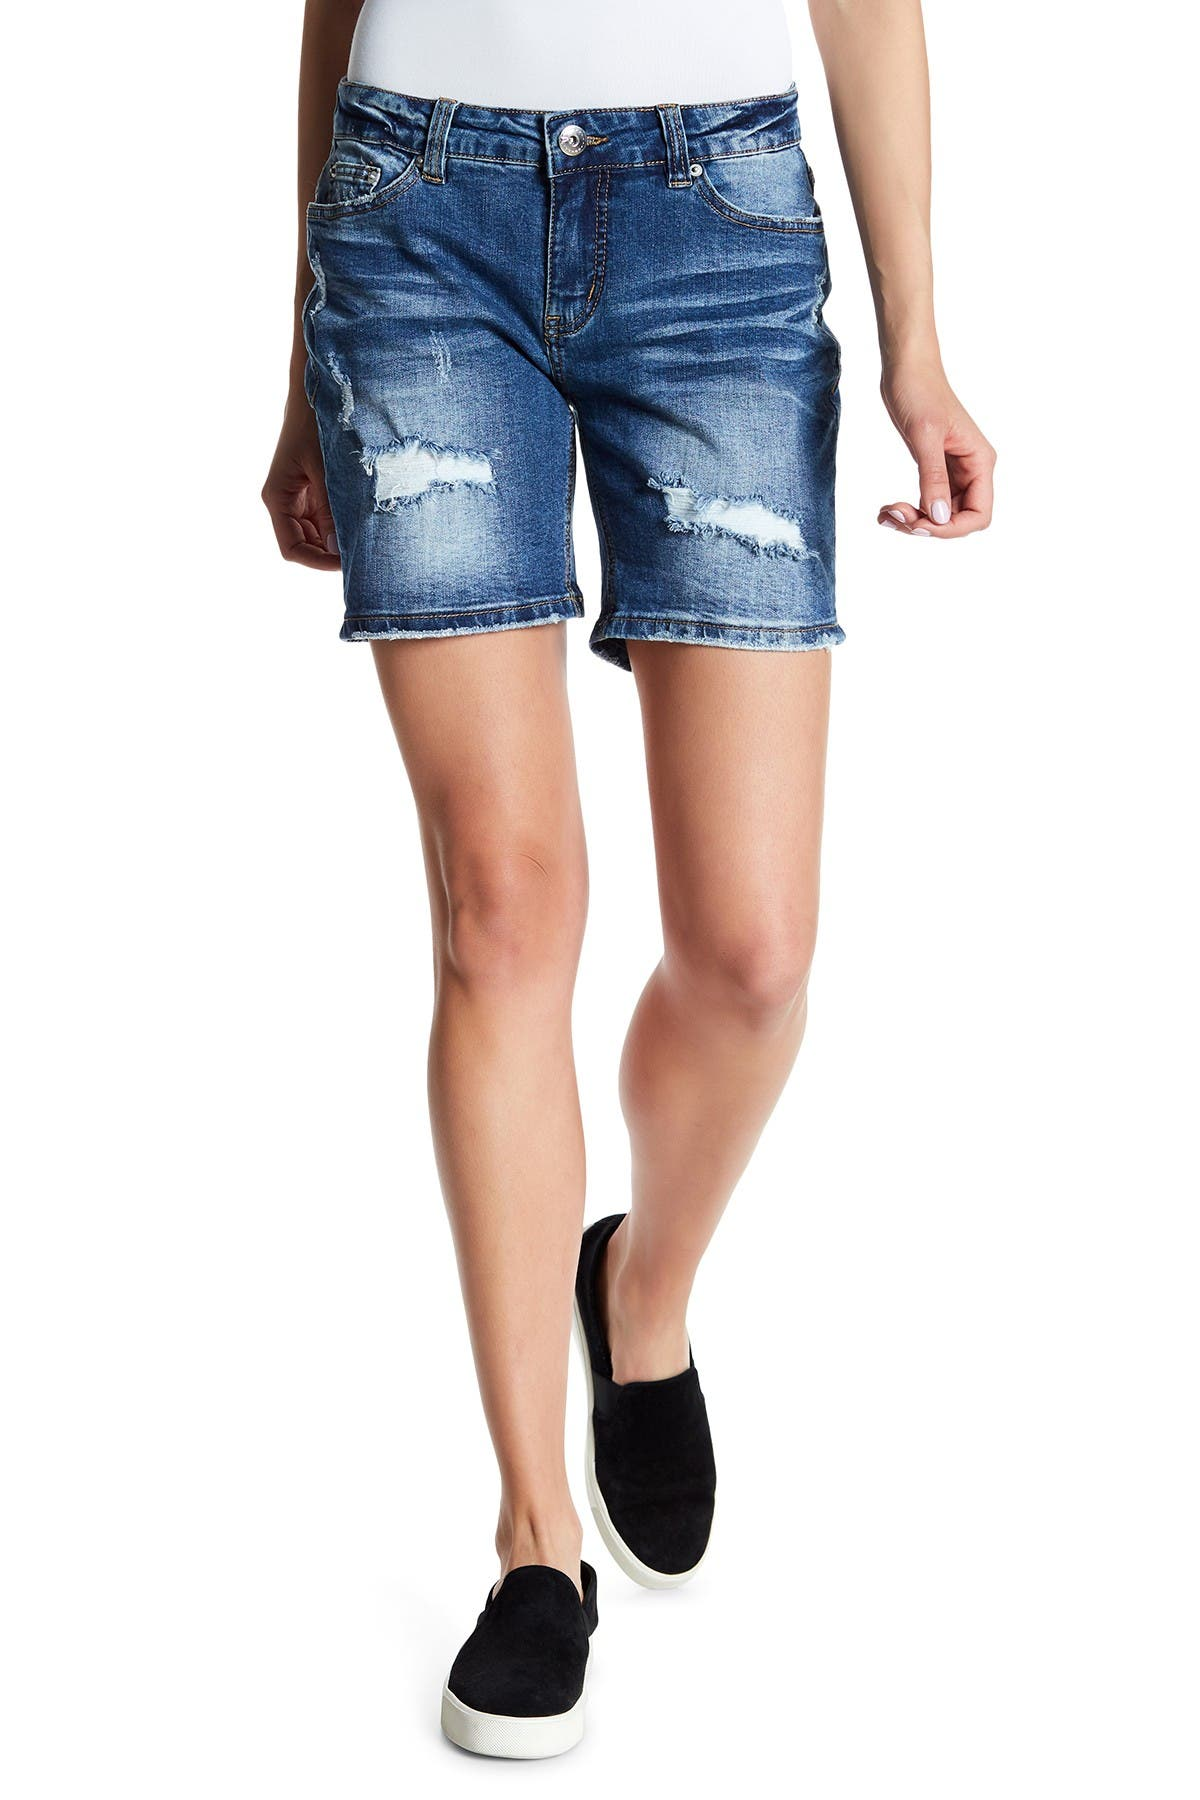 Image of SUPPLIES BY UNIONBAY Marni Distressed Rolled Denim Shorts